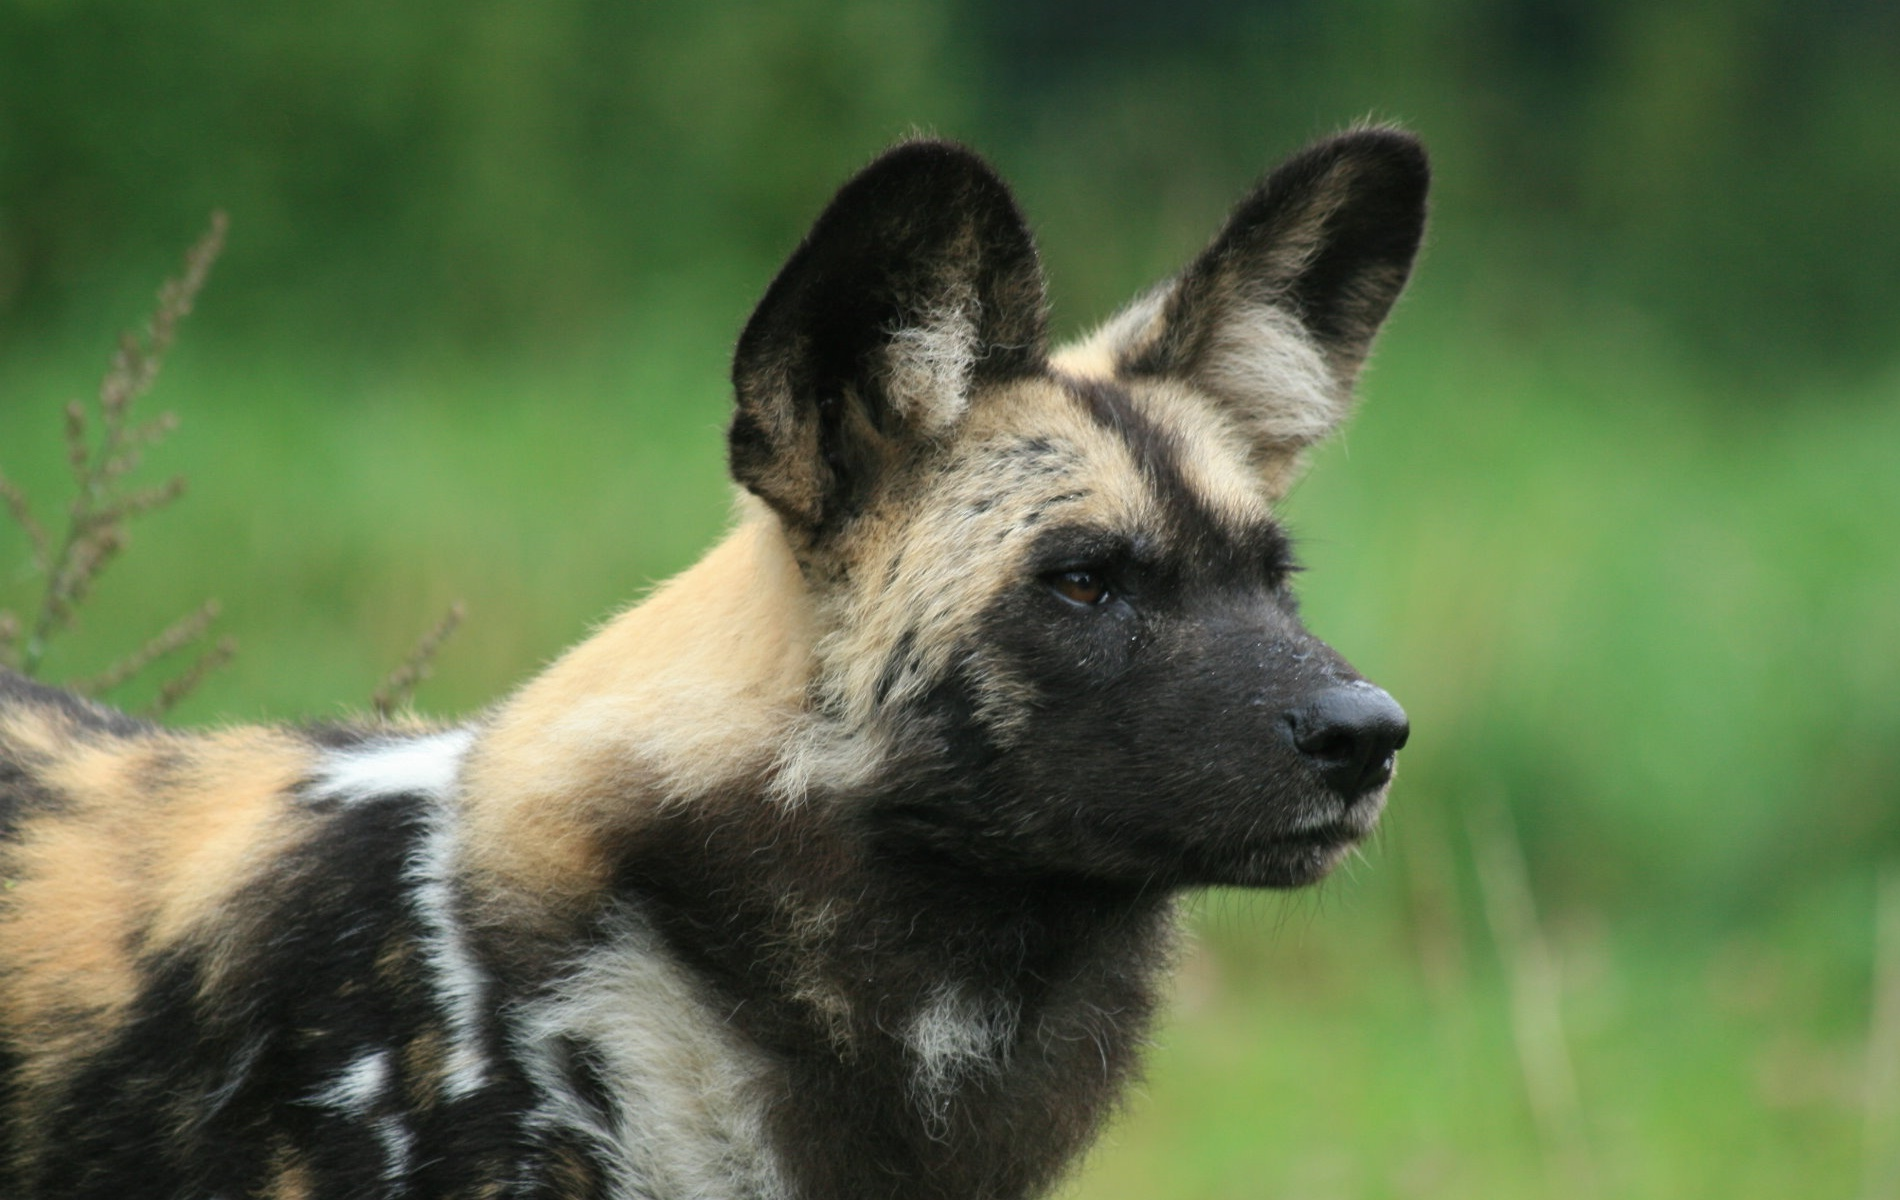 African Wild Dog - Animals Photo (13127775) - Fanpop